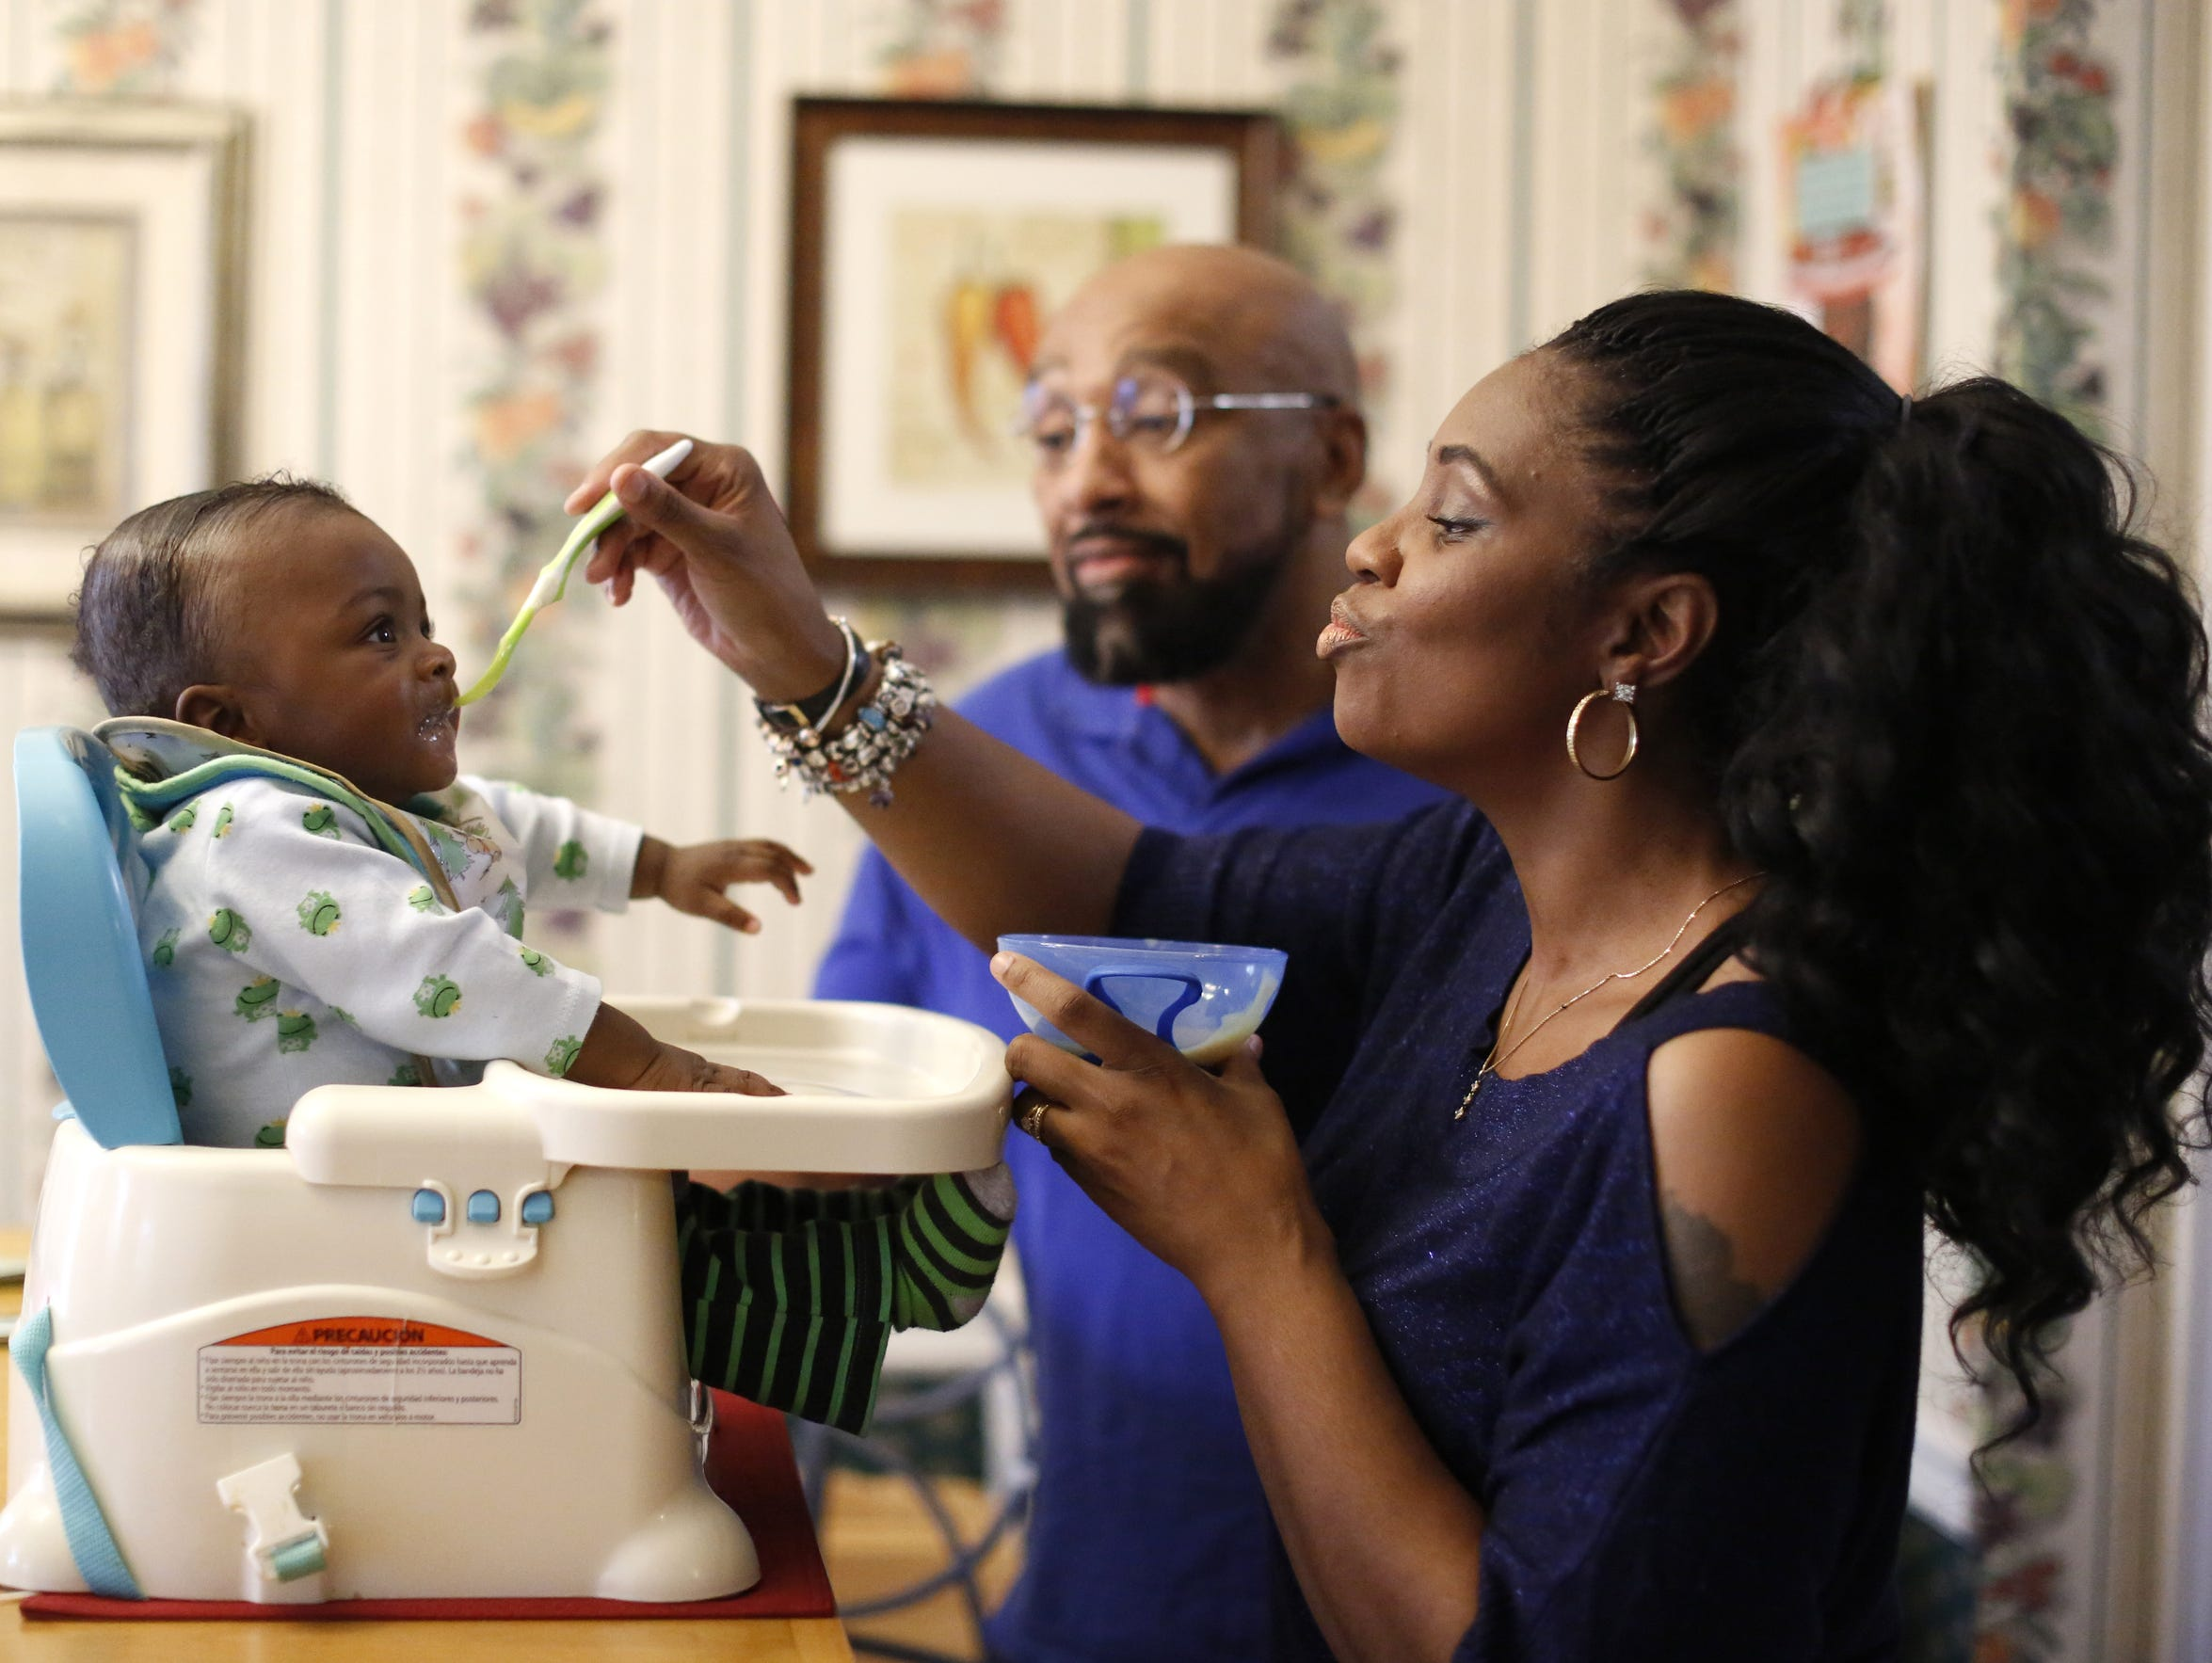 Lorraine Nichols feeds her seven-month-old son Caleb